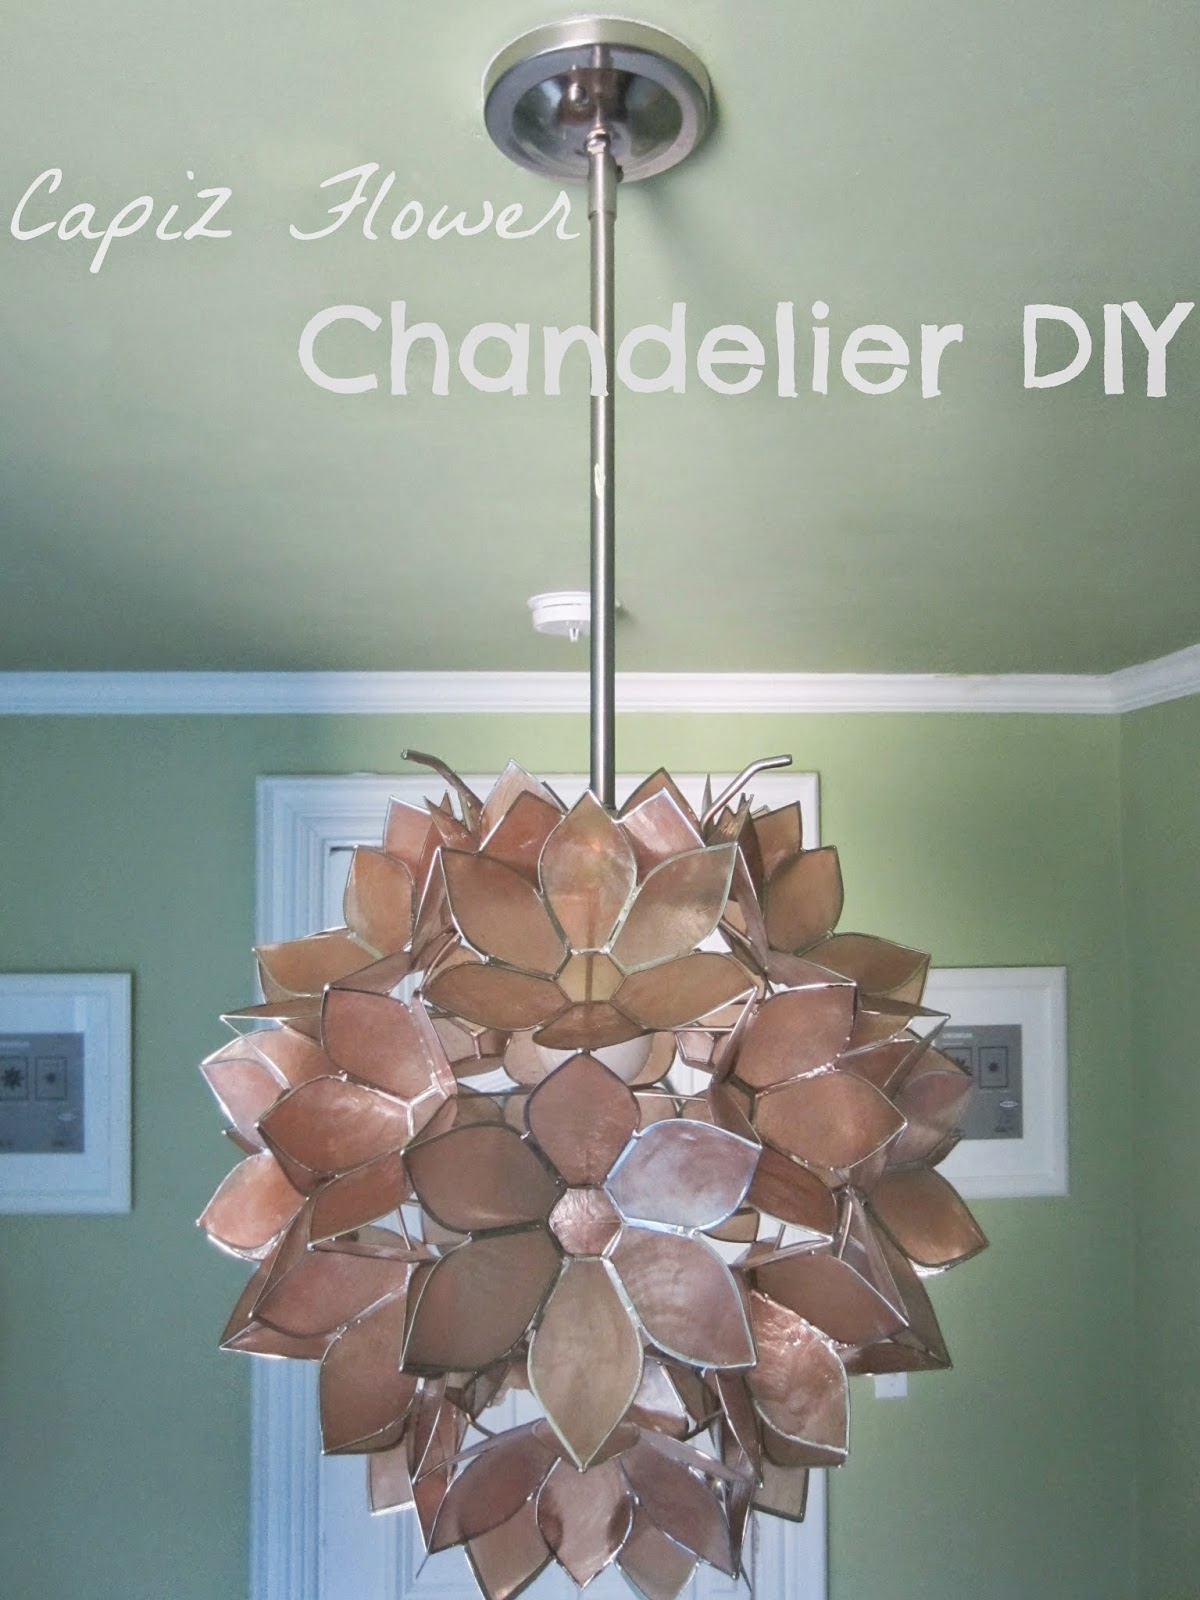 Capiz flower chandelier diy aloadofball Images